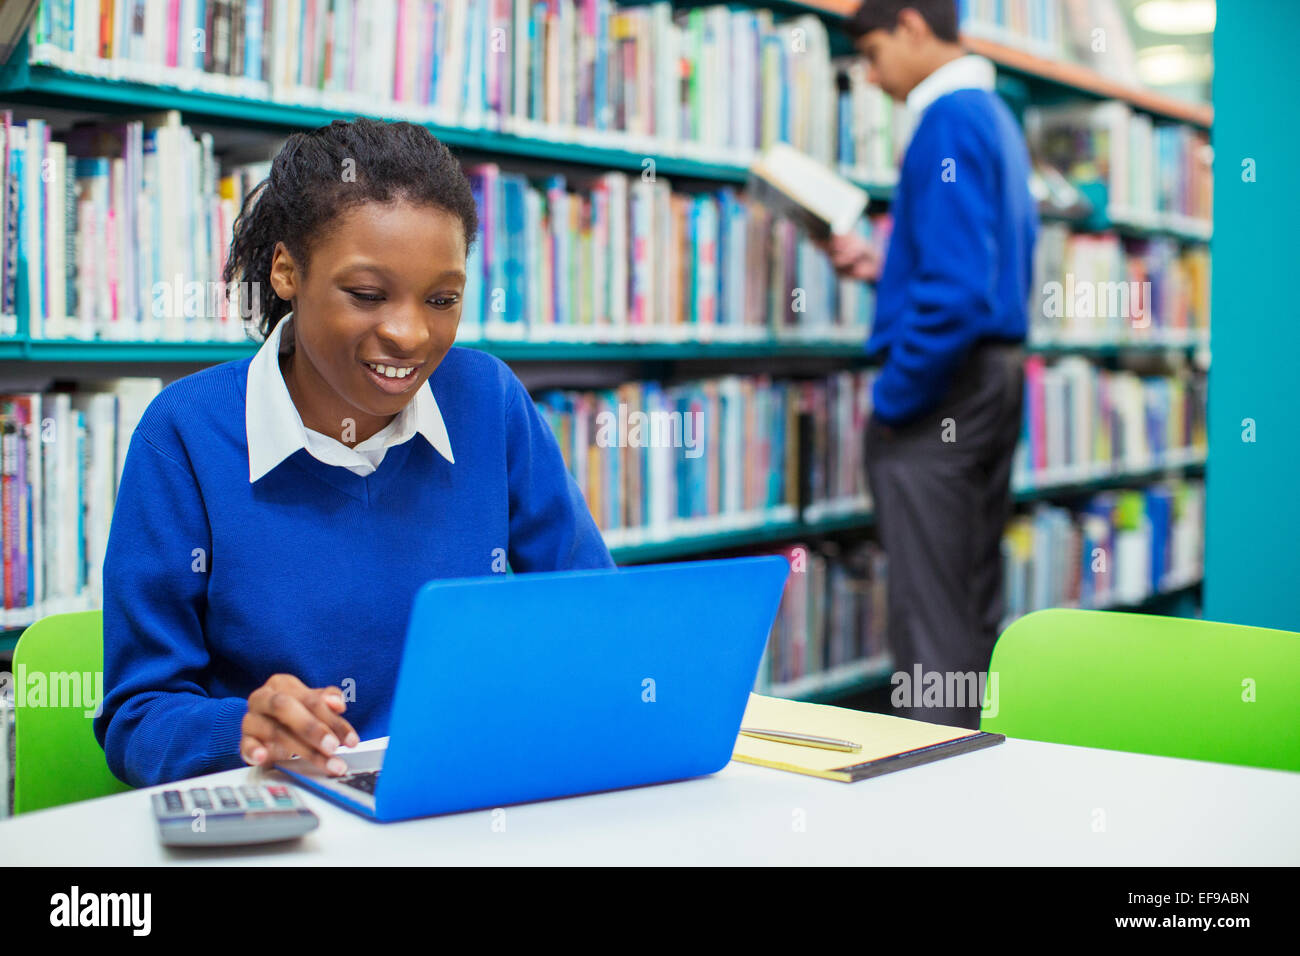 Smiling female student using laptop in library - Stock Image